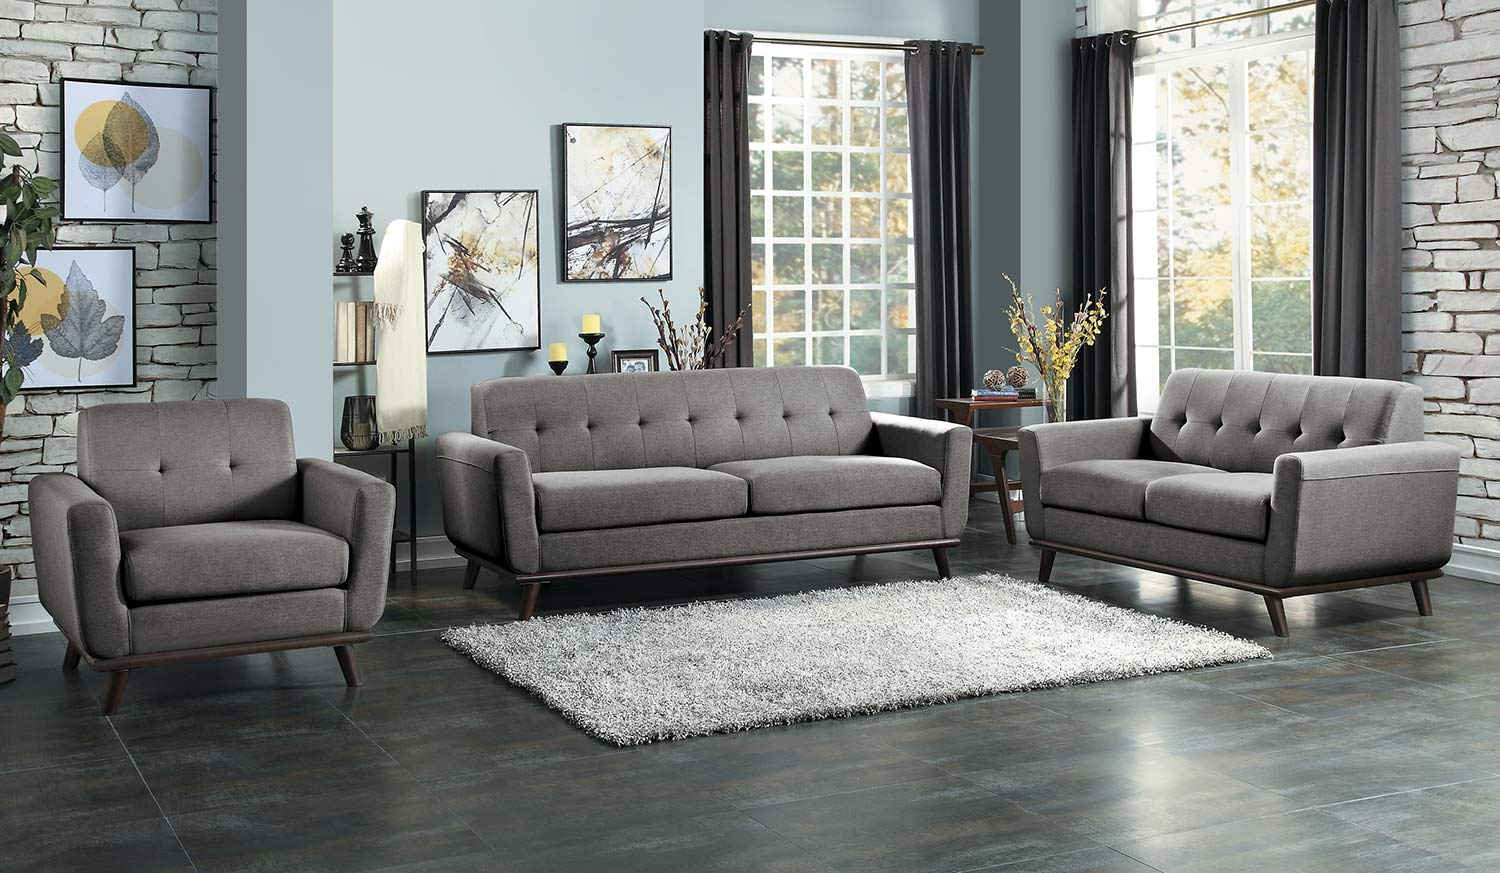 Homelegance Rittman Sofa Set - Gray